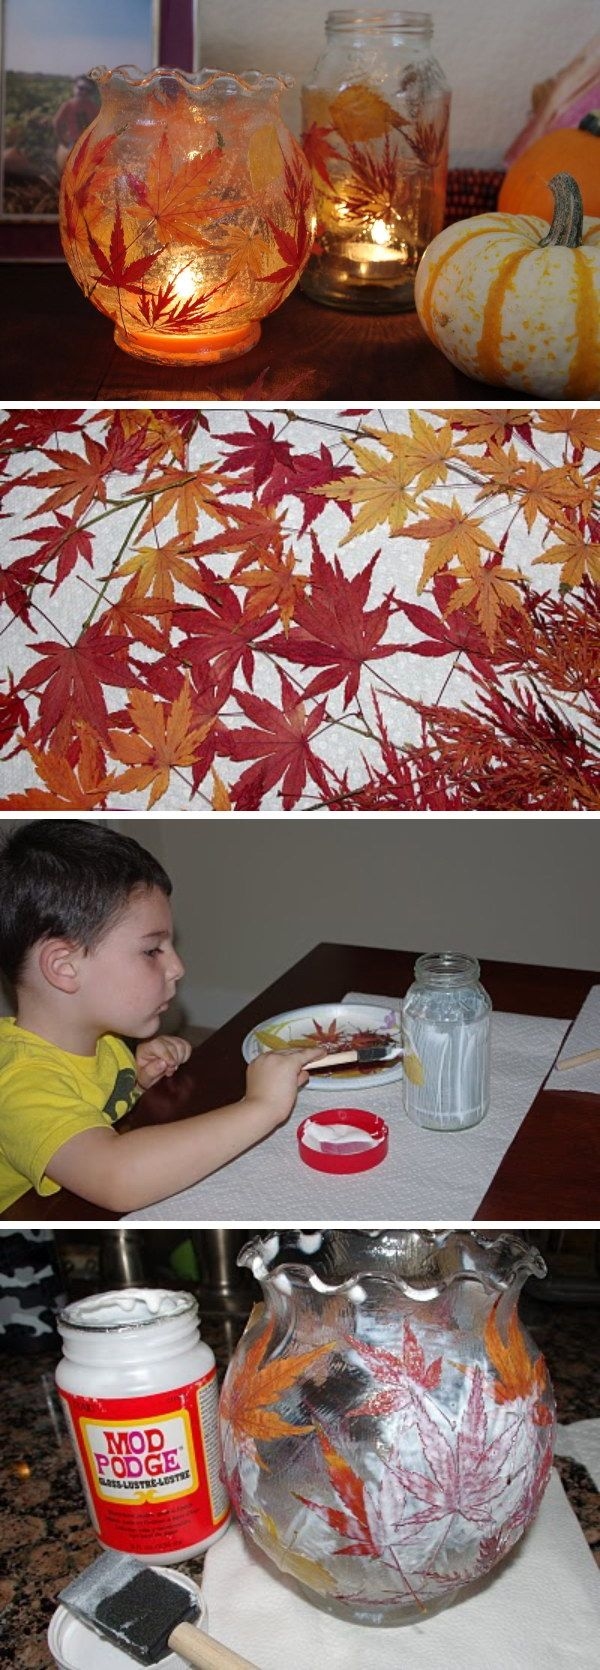 DIY Crafts with Fall Leaves Check more at https://wikilatest.com/diy/diy-crafts-with-fall-lea…